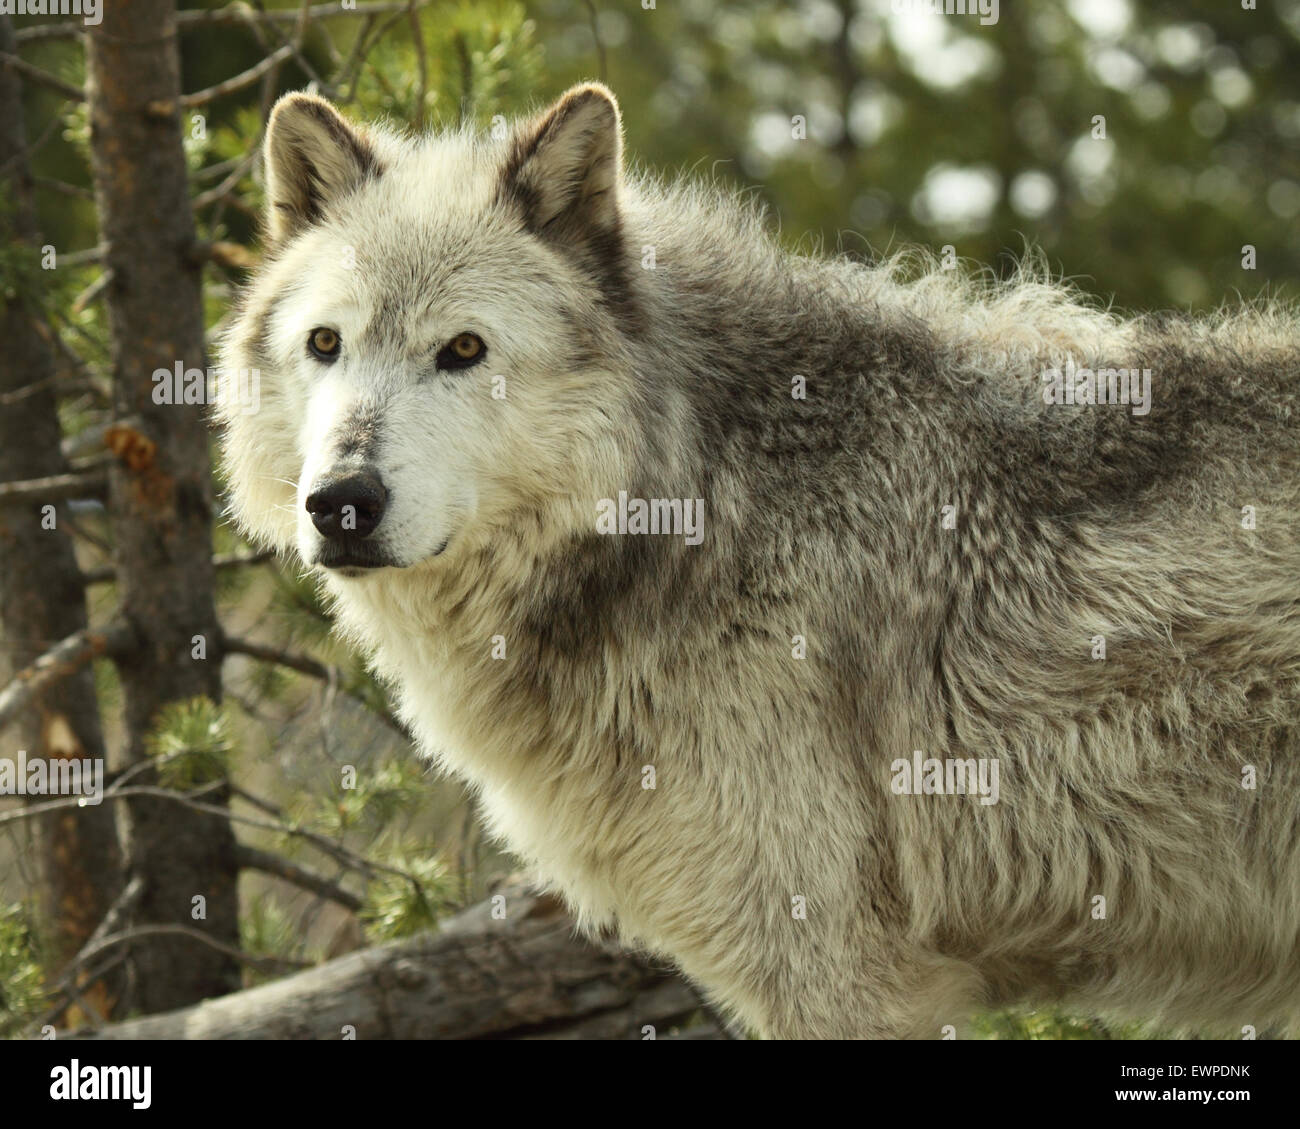 A Gray Wolf pausing in a Montana woodland. - Stock Image